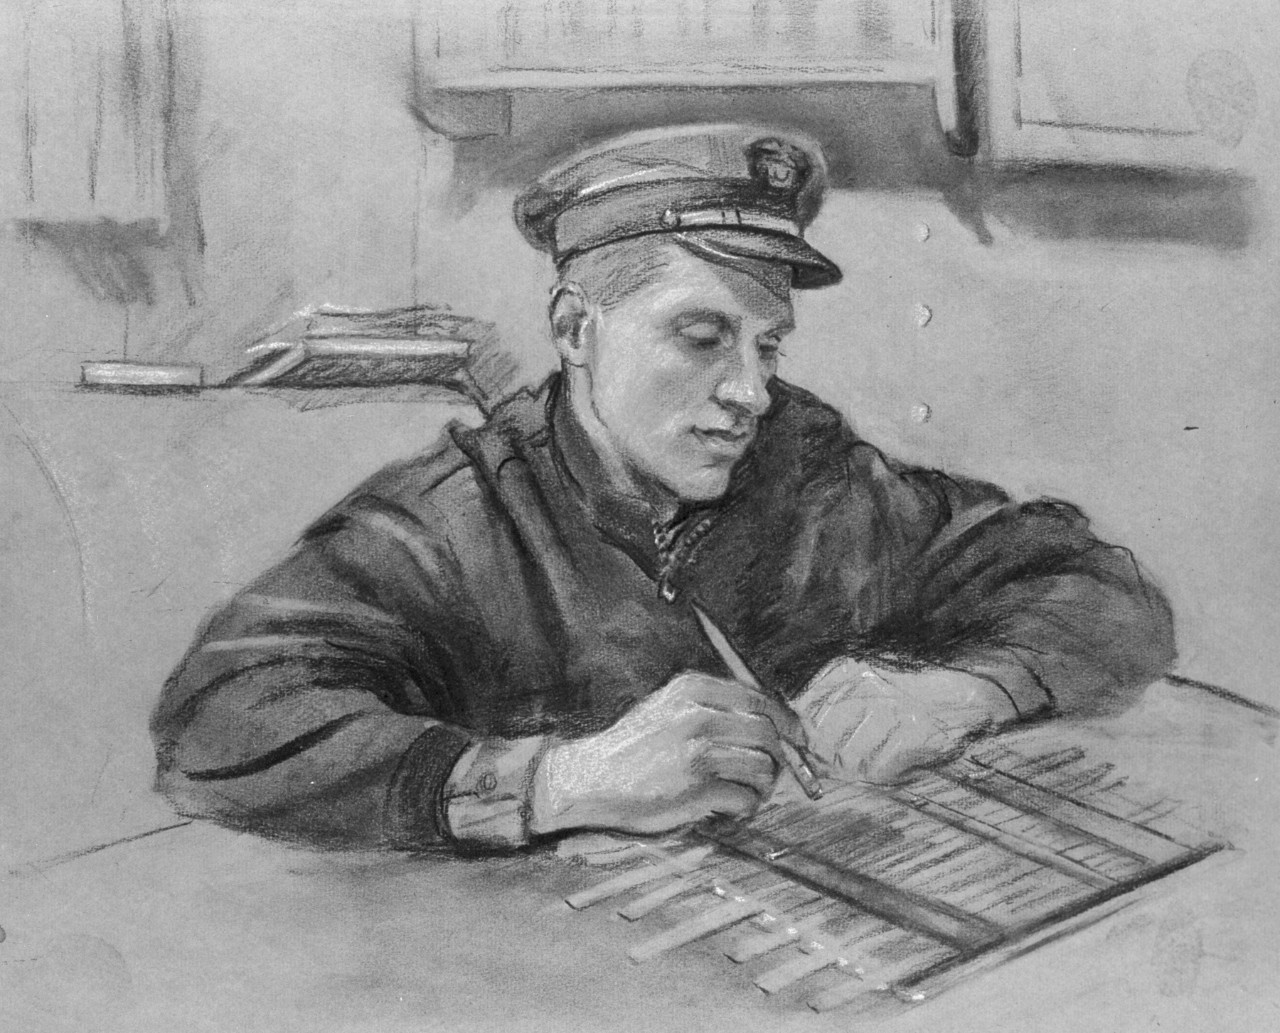 Portrait of a navy officer